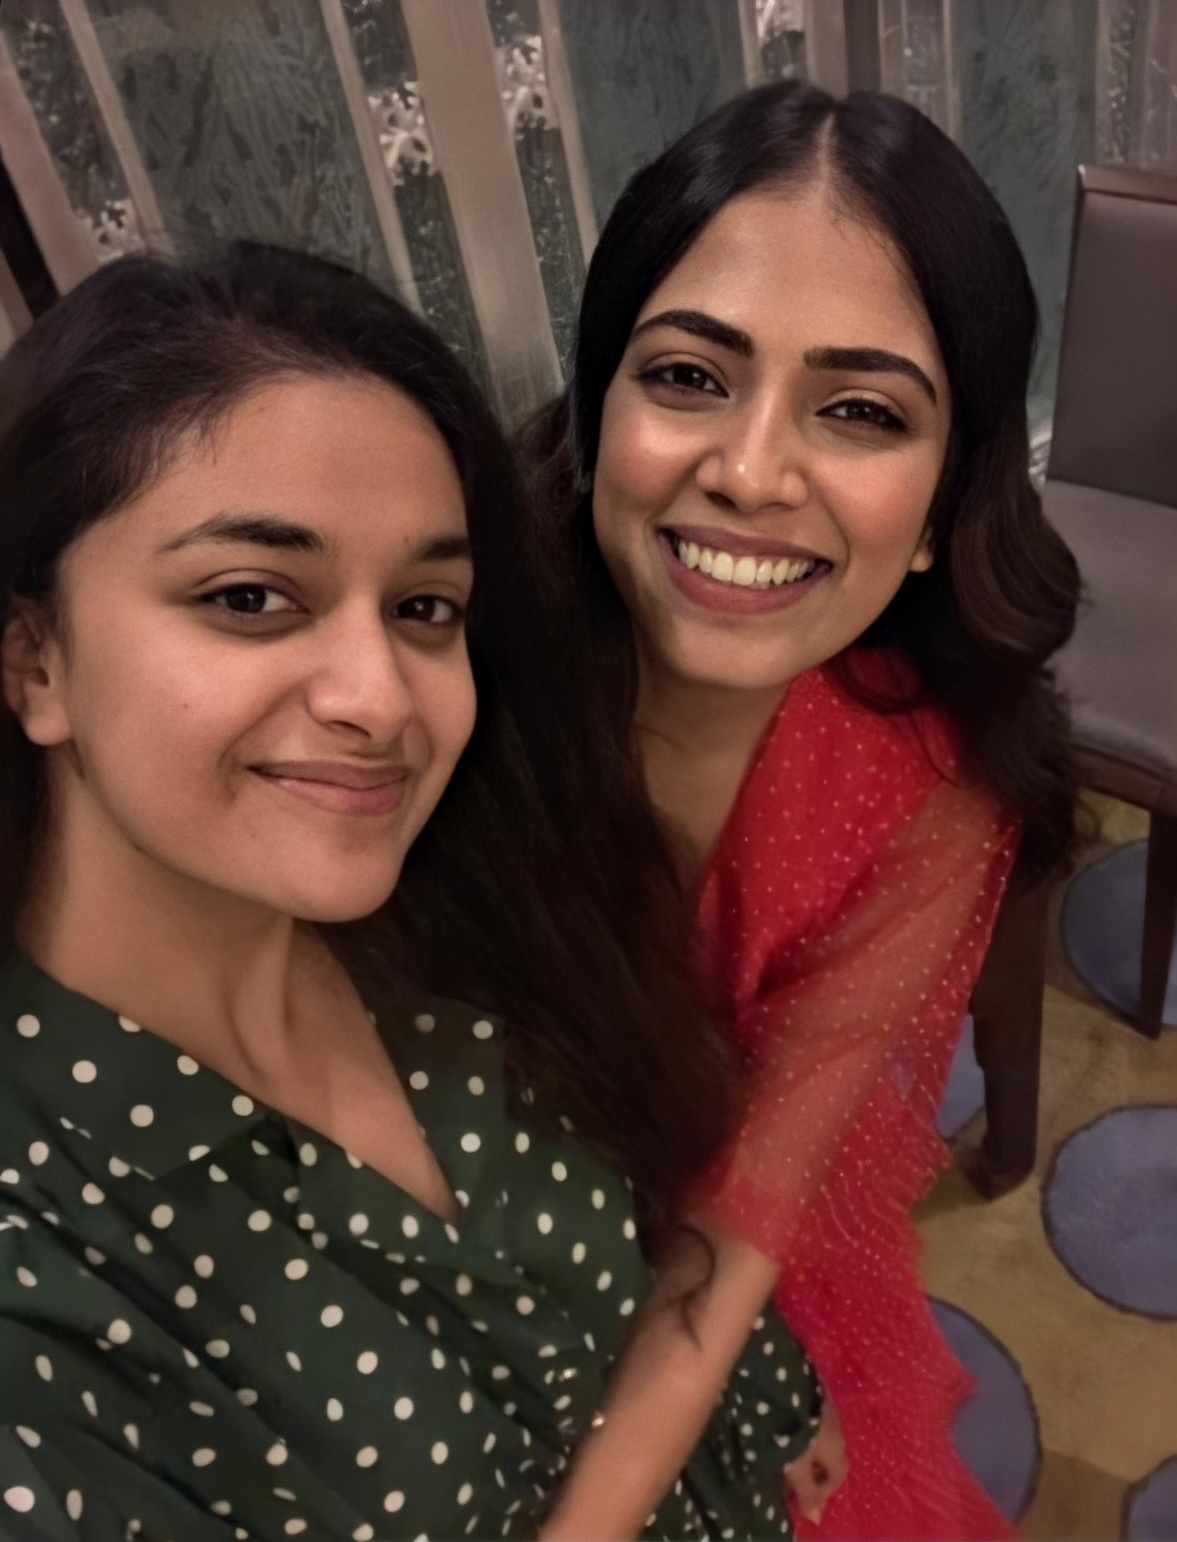 Keerthy Suresh with Cute and Lovely Chubby Cheeks Smile Selfie with Malavika Mohanan 1